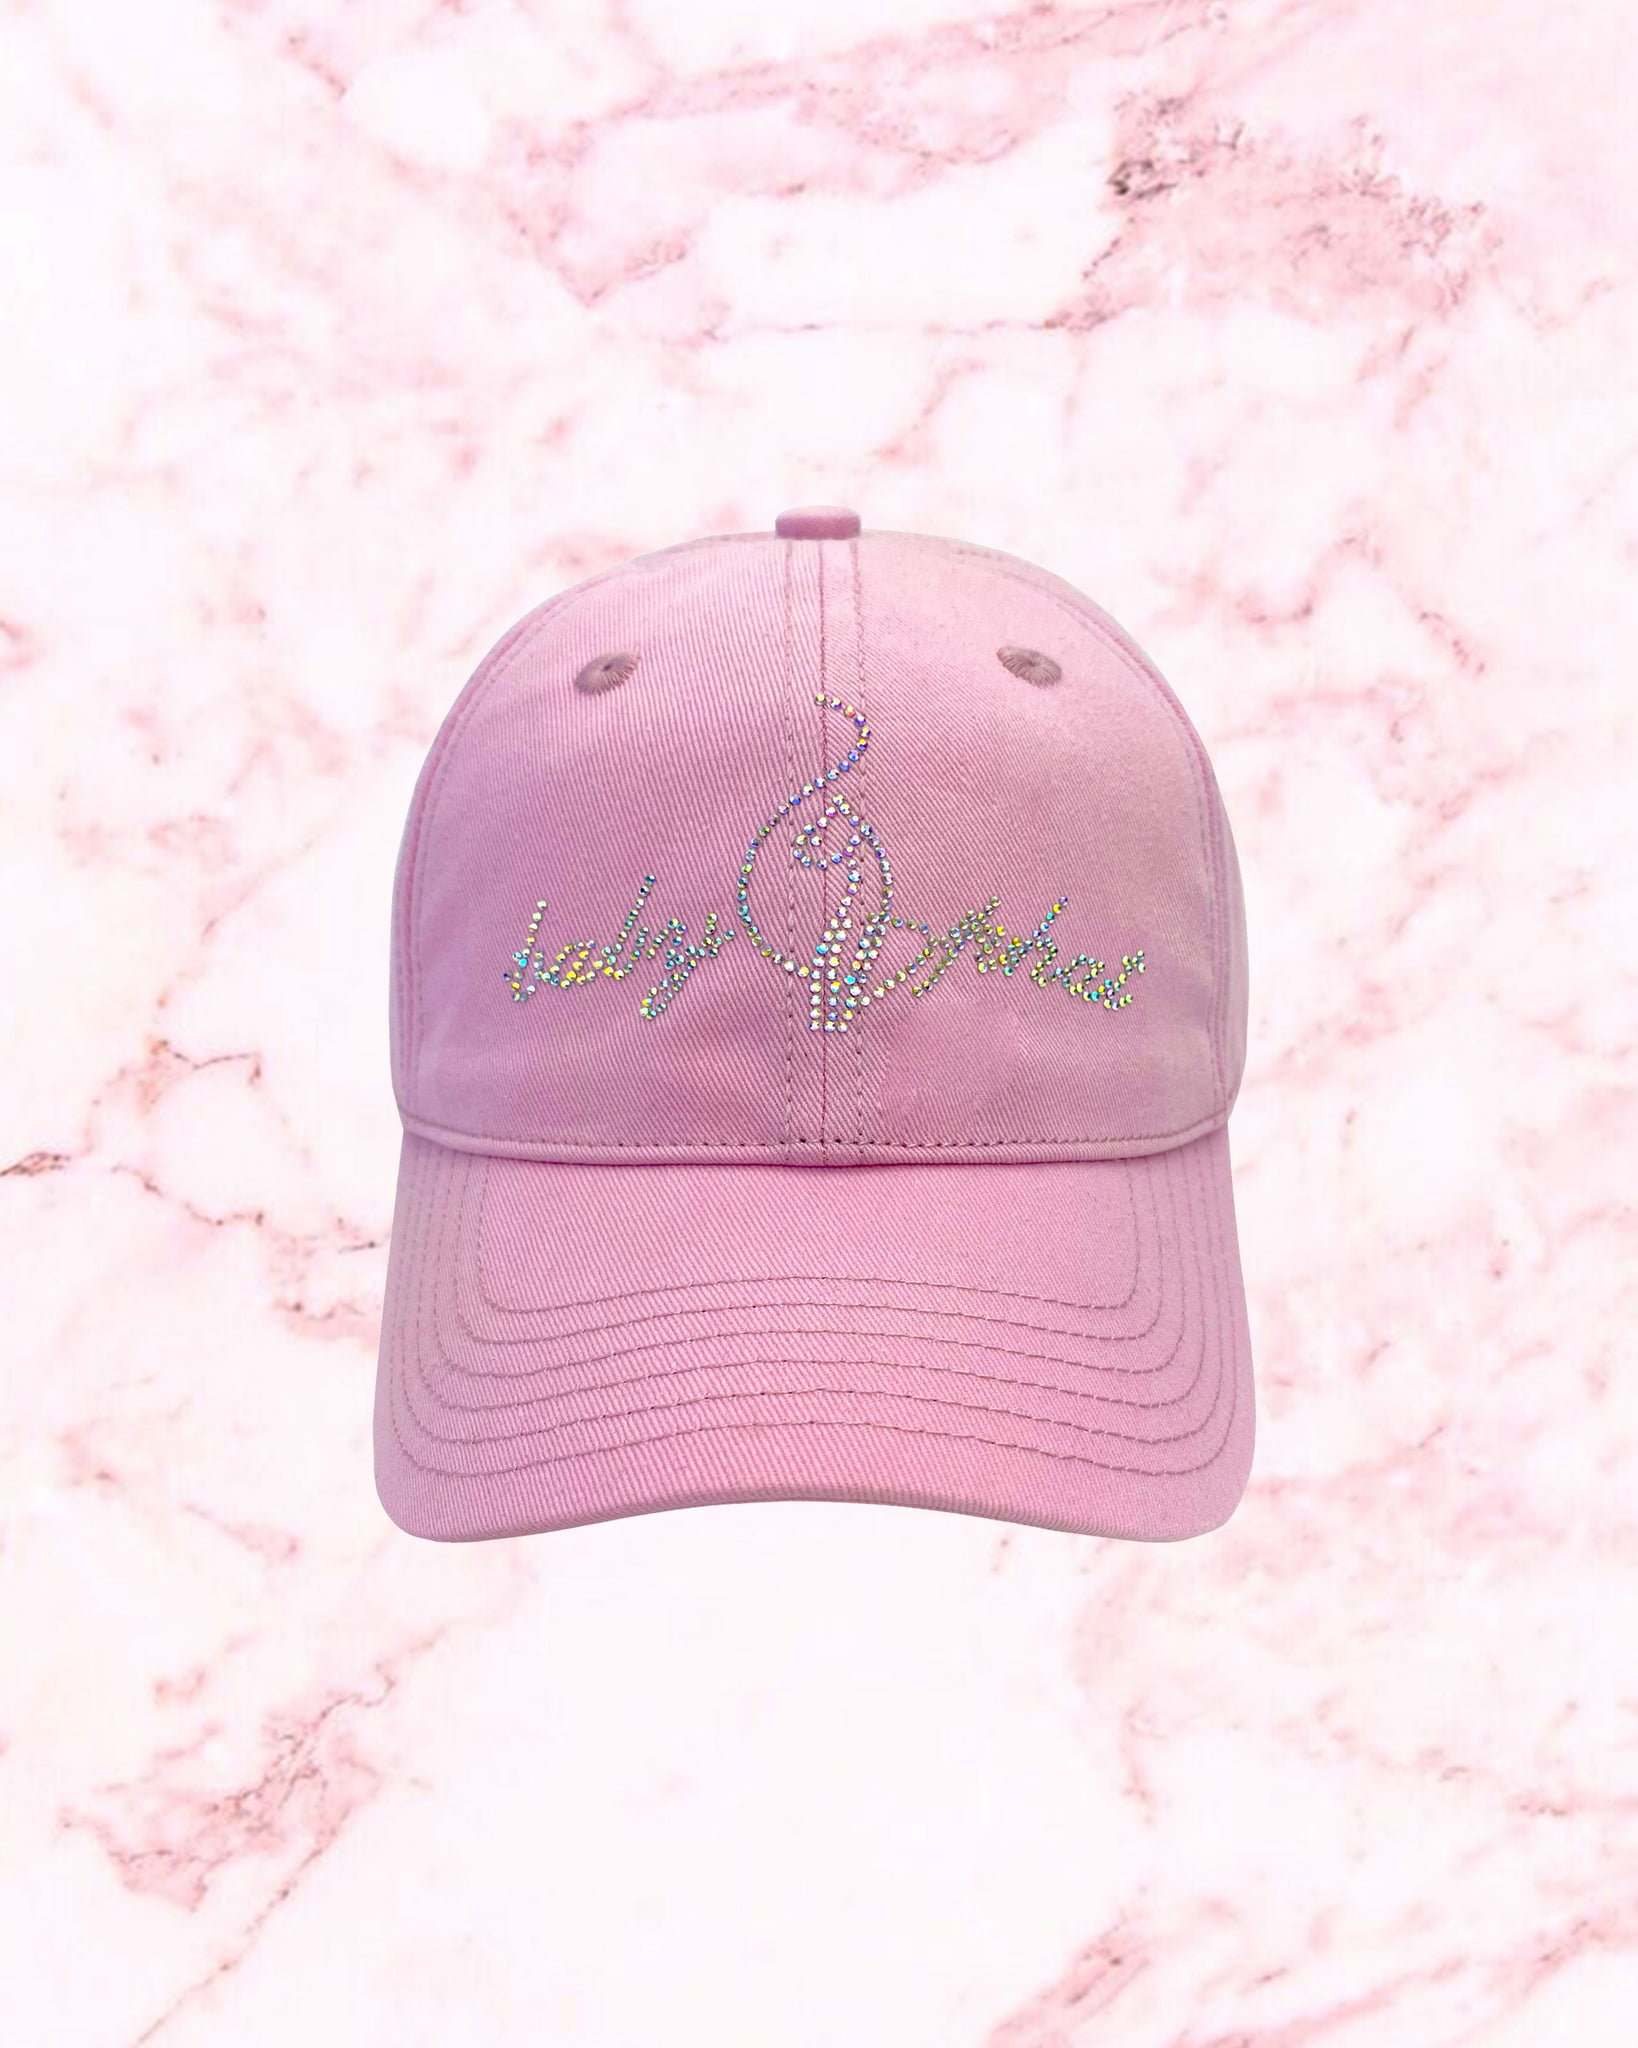 Pink baseball hat features Baby Phat iridescent crystal logo at front.